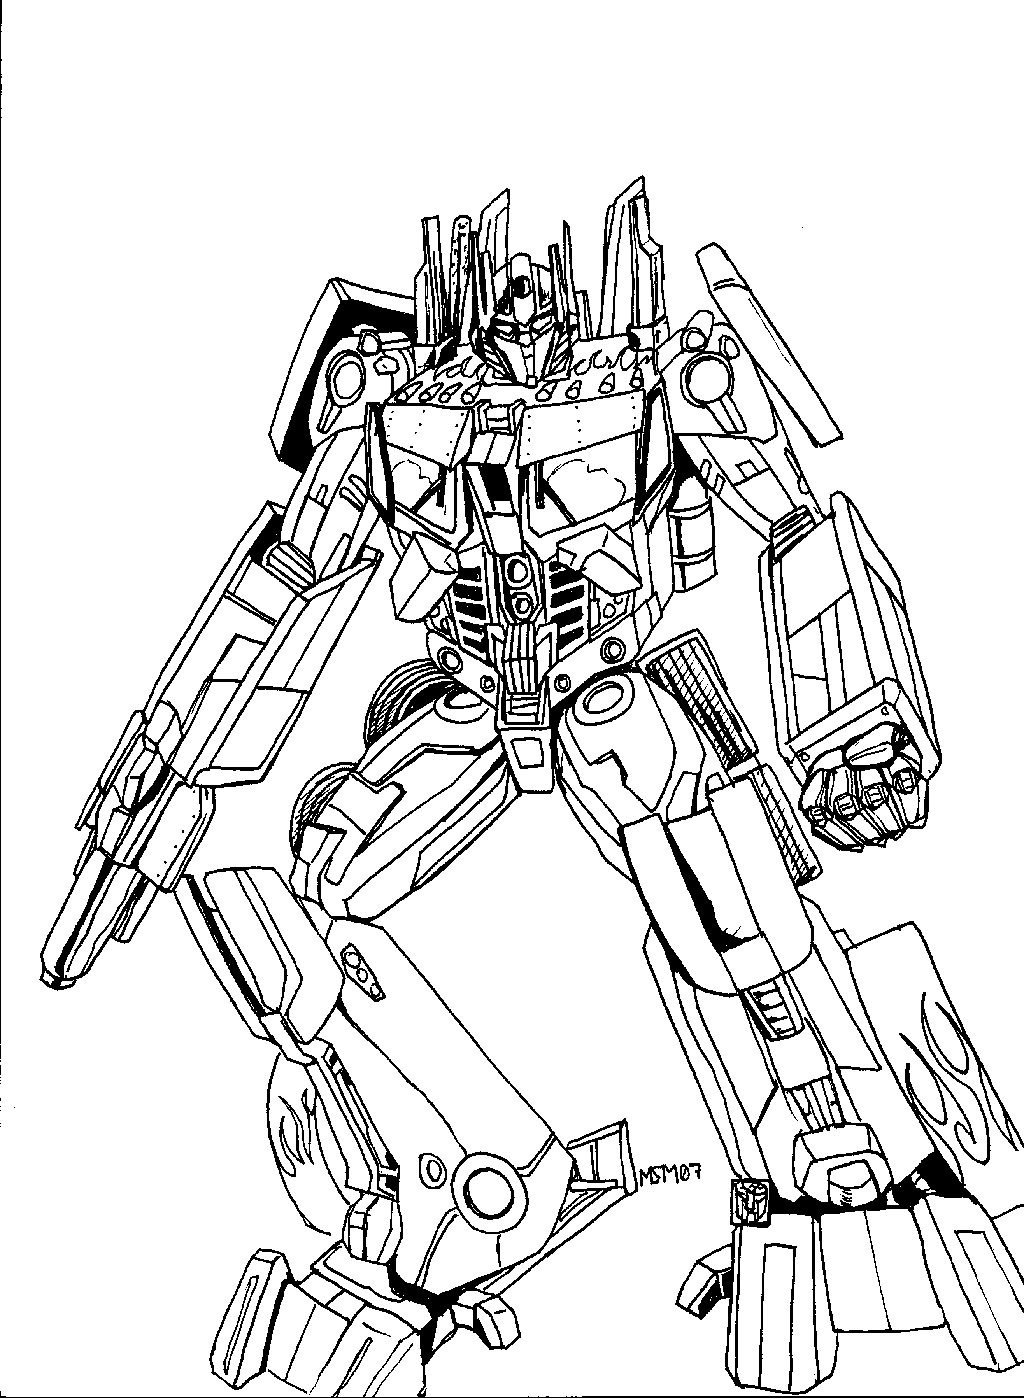 Transformers Coloring Pages Bumblebee  Free Printable Transformers Coloring Pages For Kids